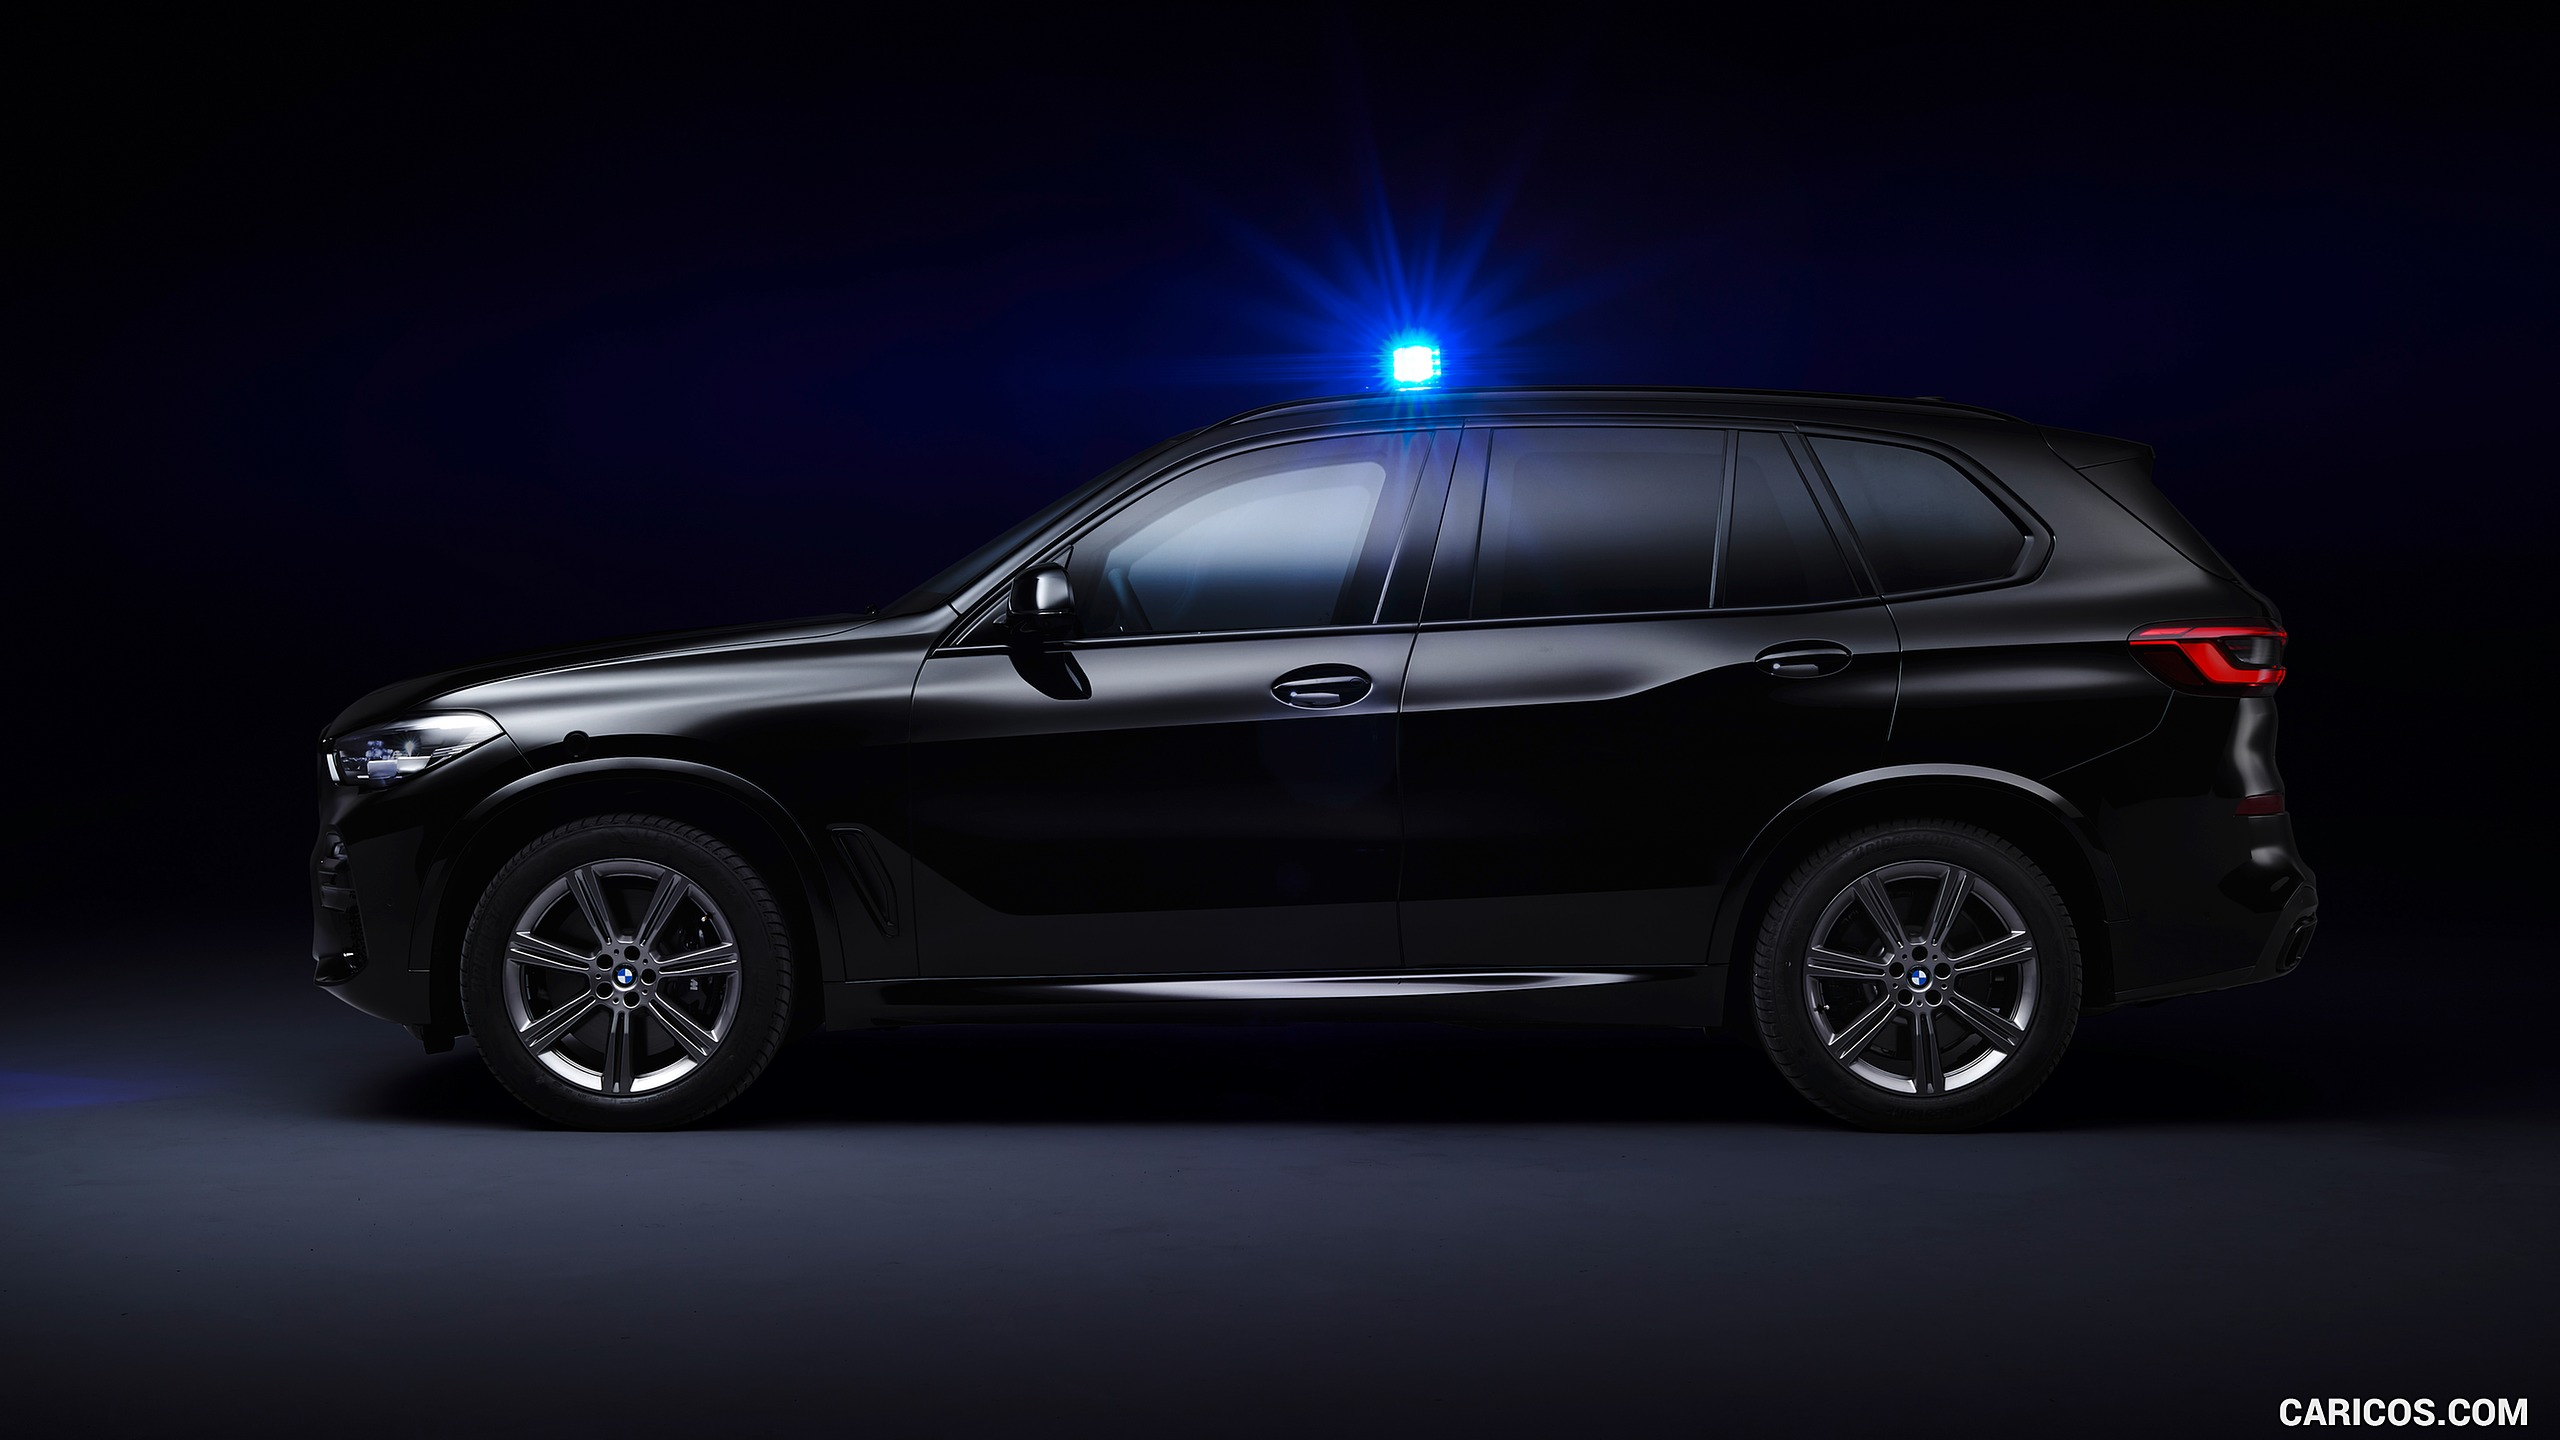 2020 BMW X5 Protection VR6 Armored Vehicle   Side HD Wallpaper 12 2560x1440